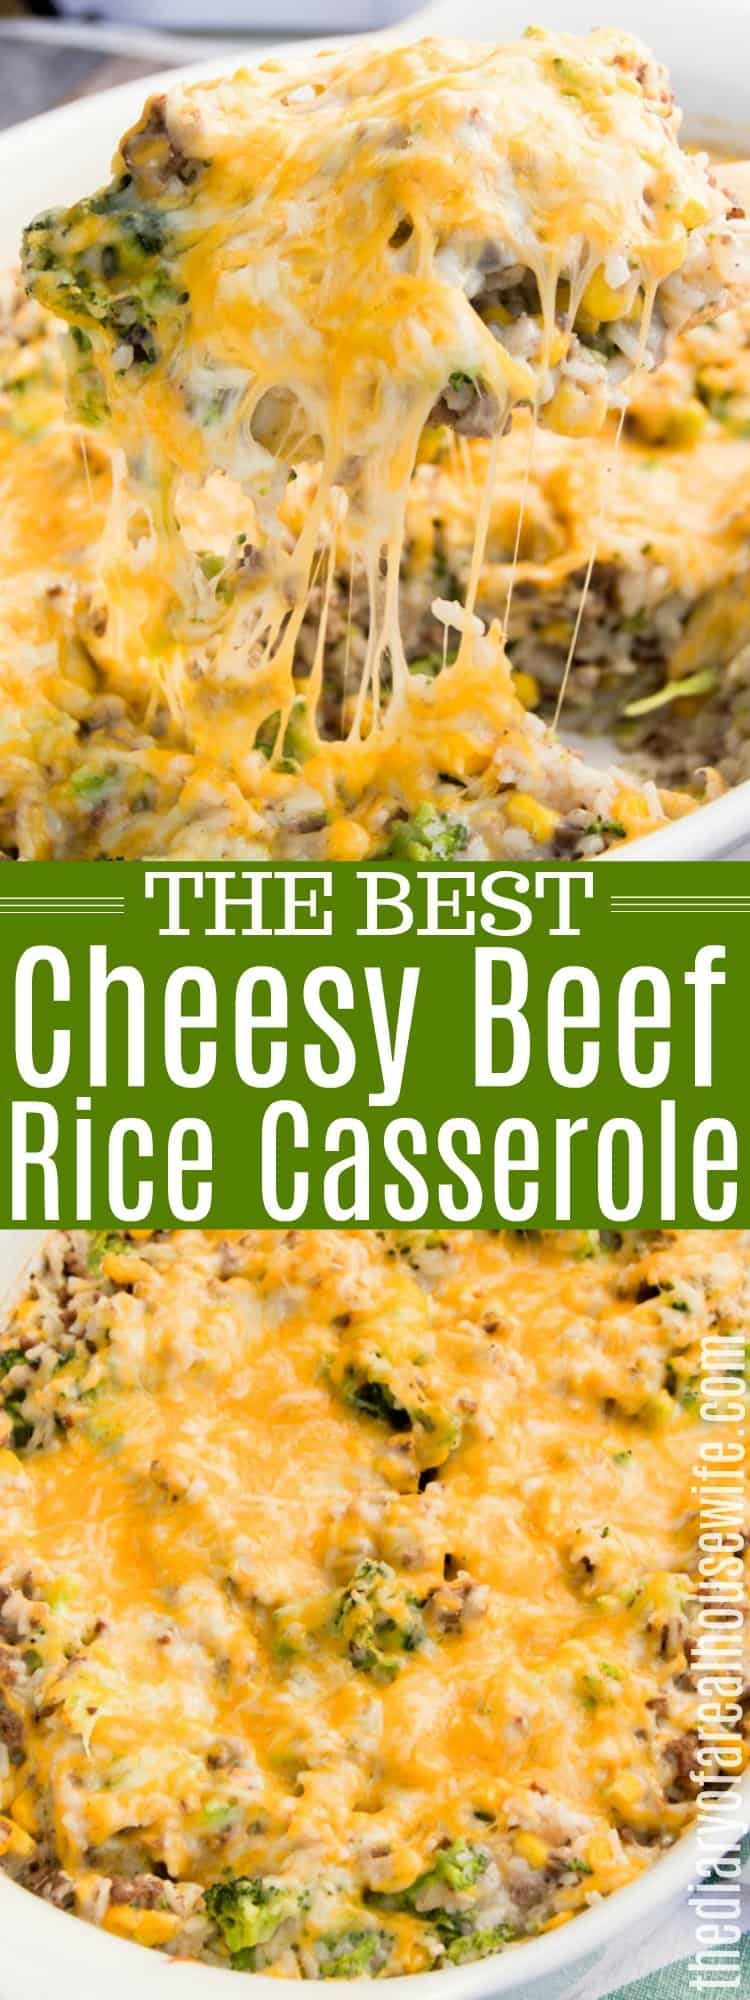 Beef and Rice Casserole #hamburgercassarole